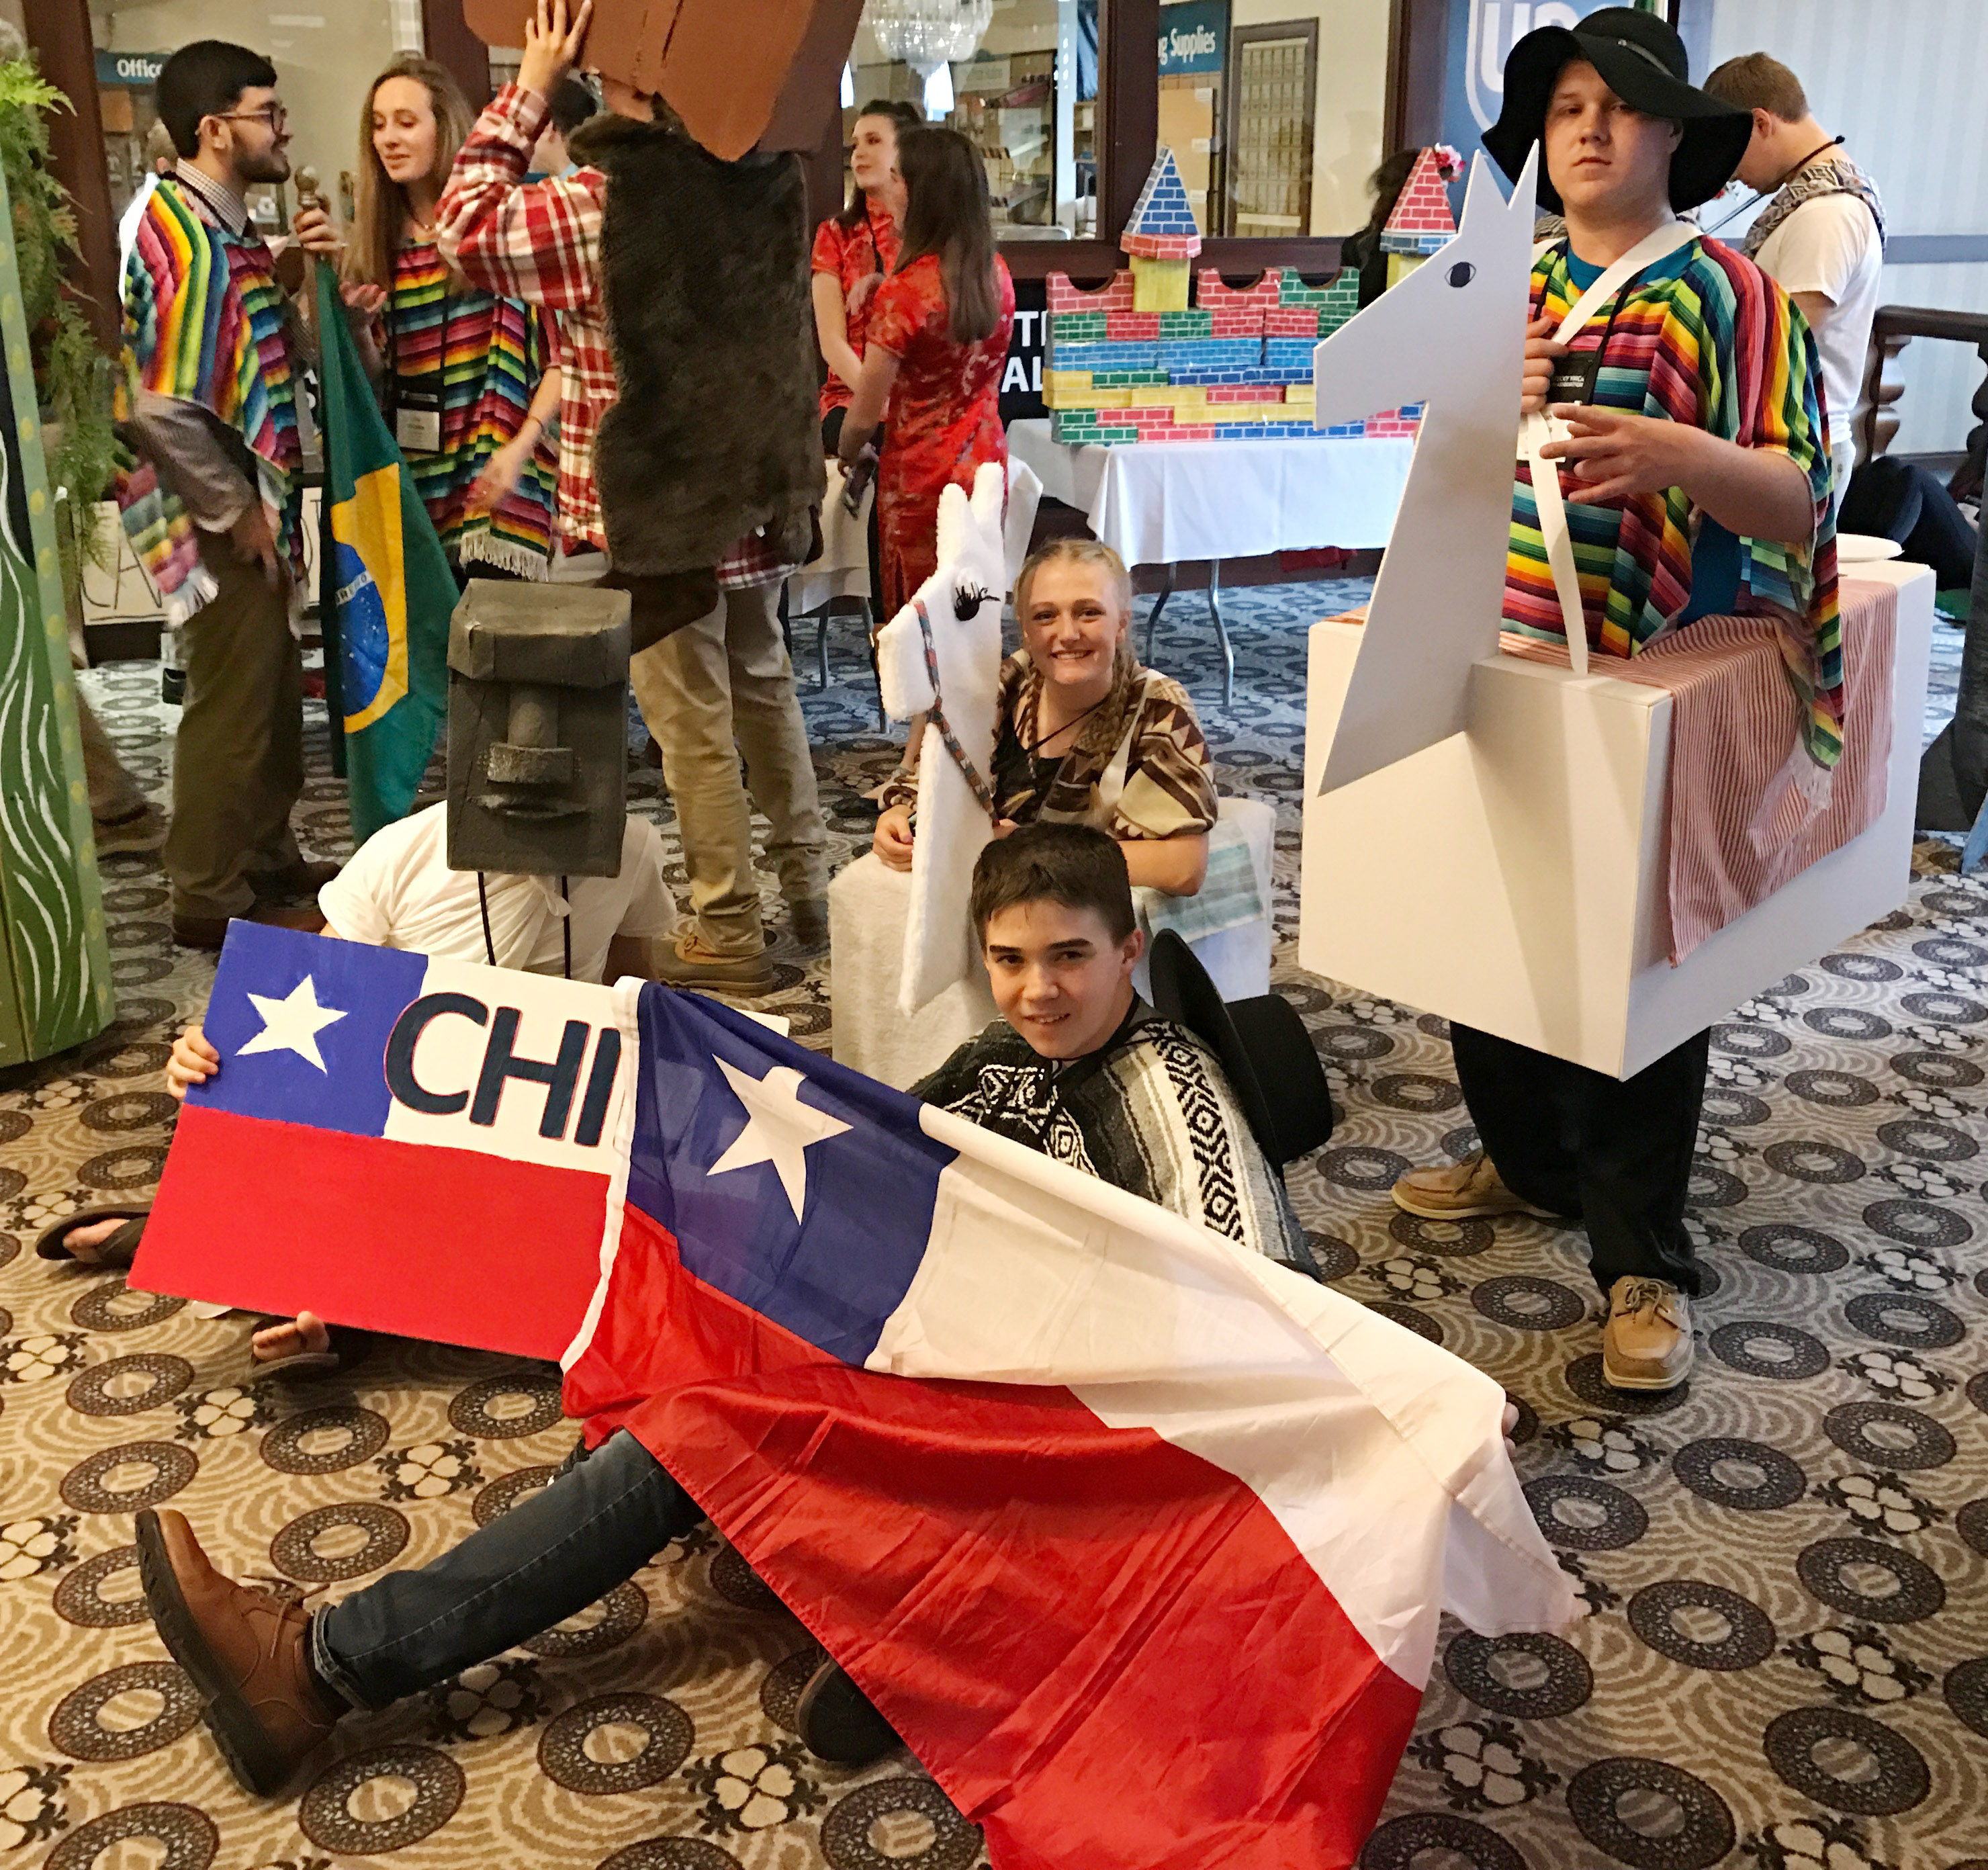 From left, CHS junior Bryce Richardson, sophomore Abbie Dicken, freshman Cole Kidwell and senior Noah Wagers dress for their presentation about Chile.